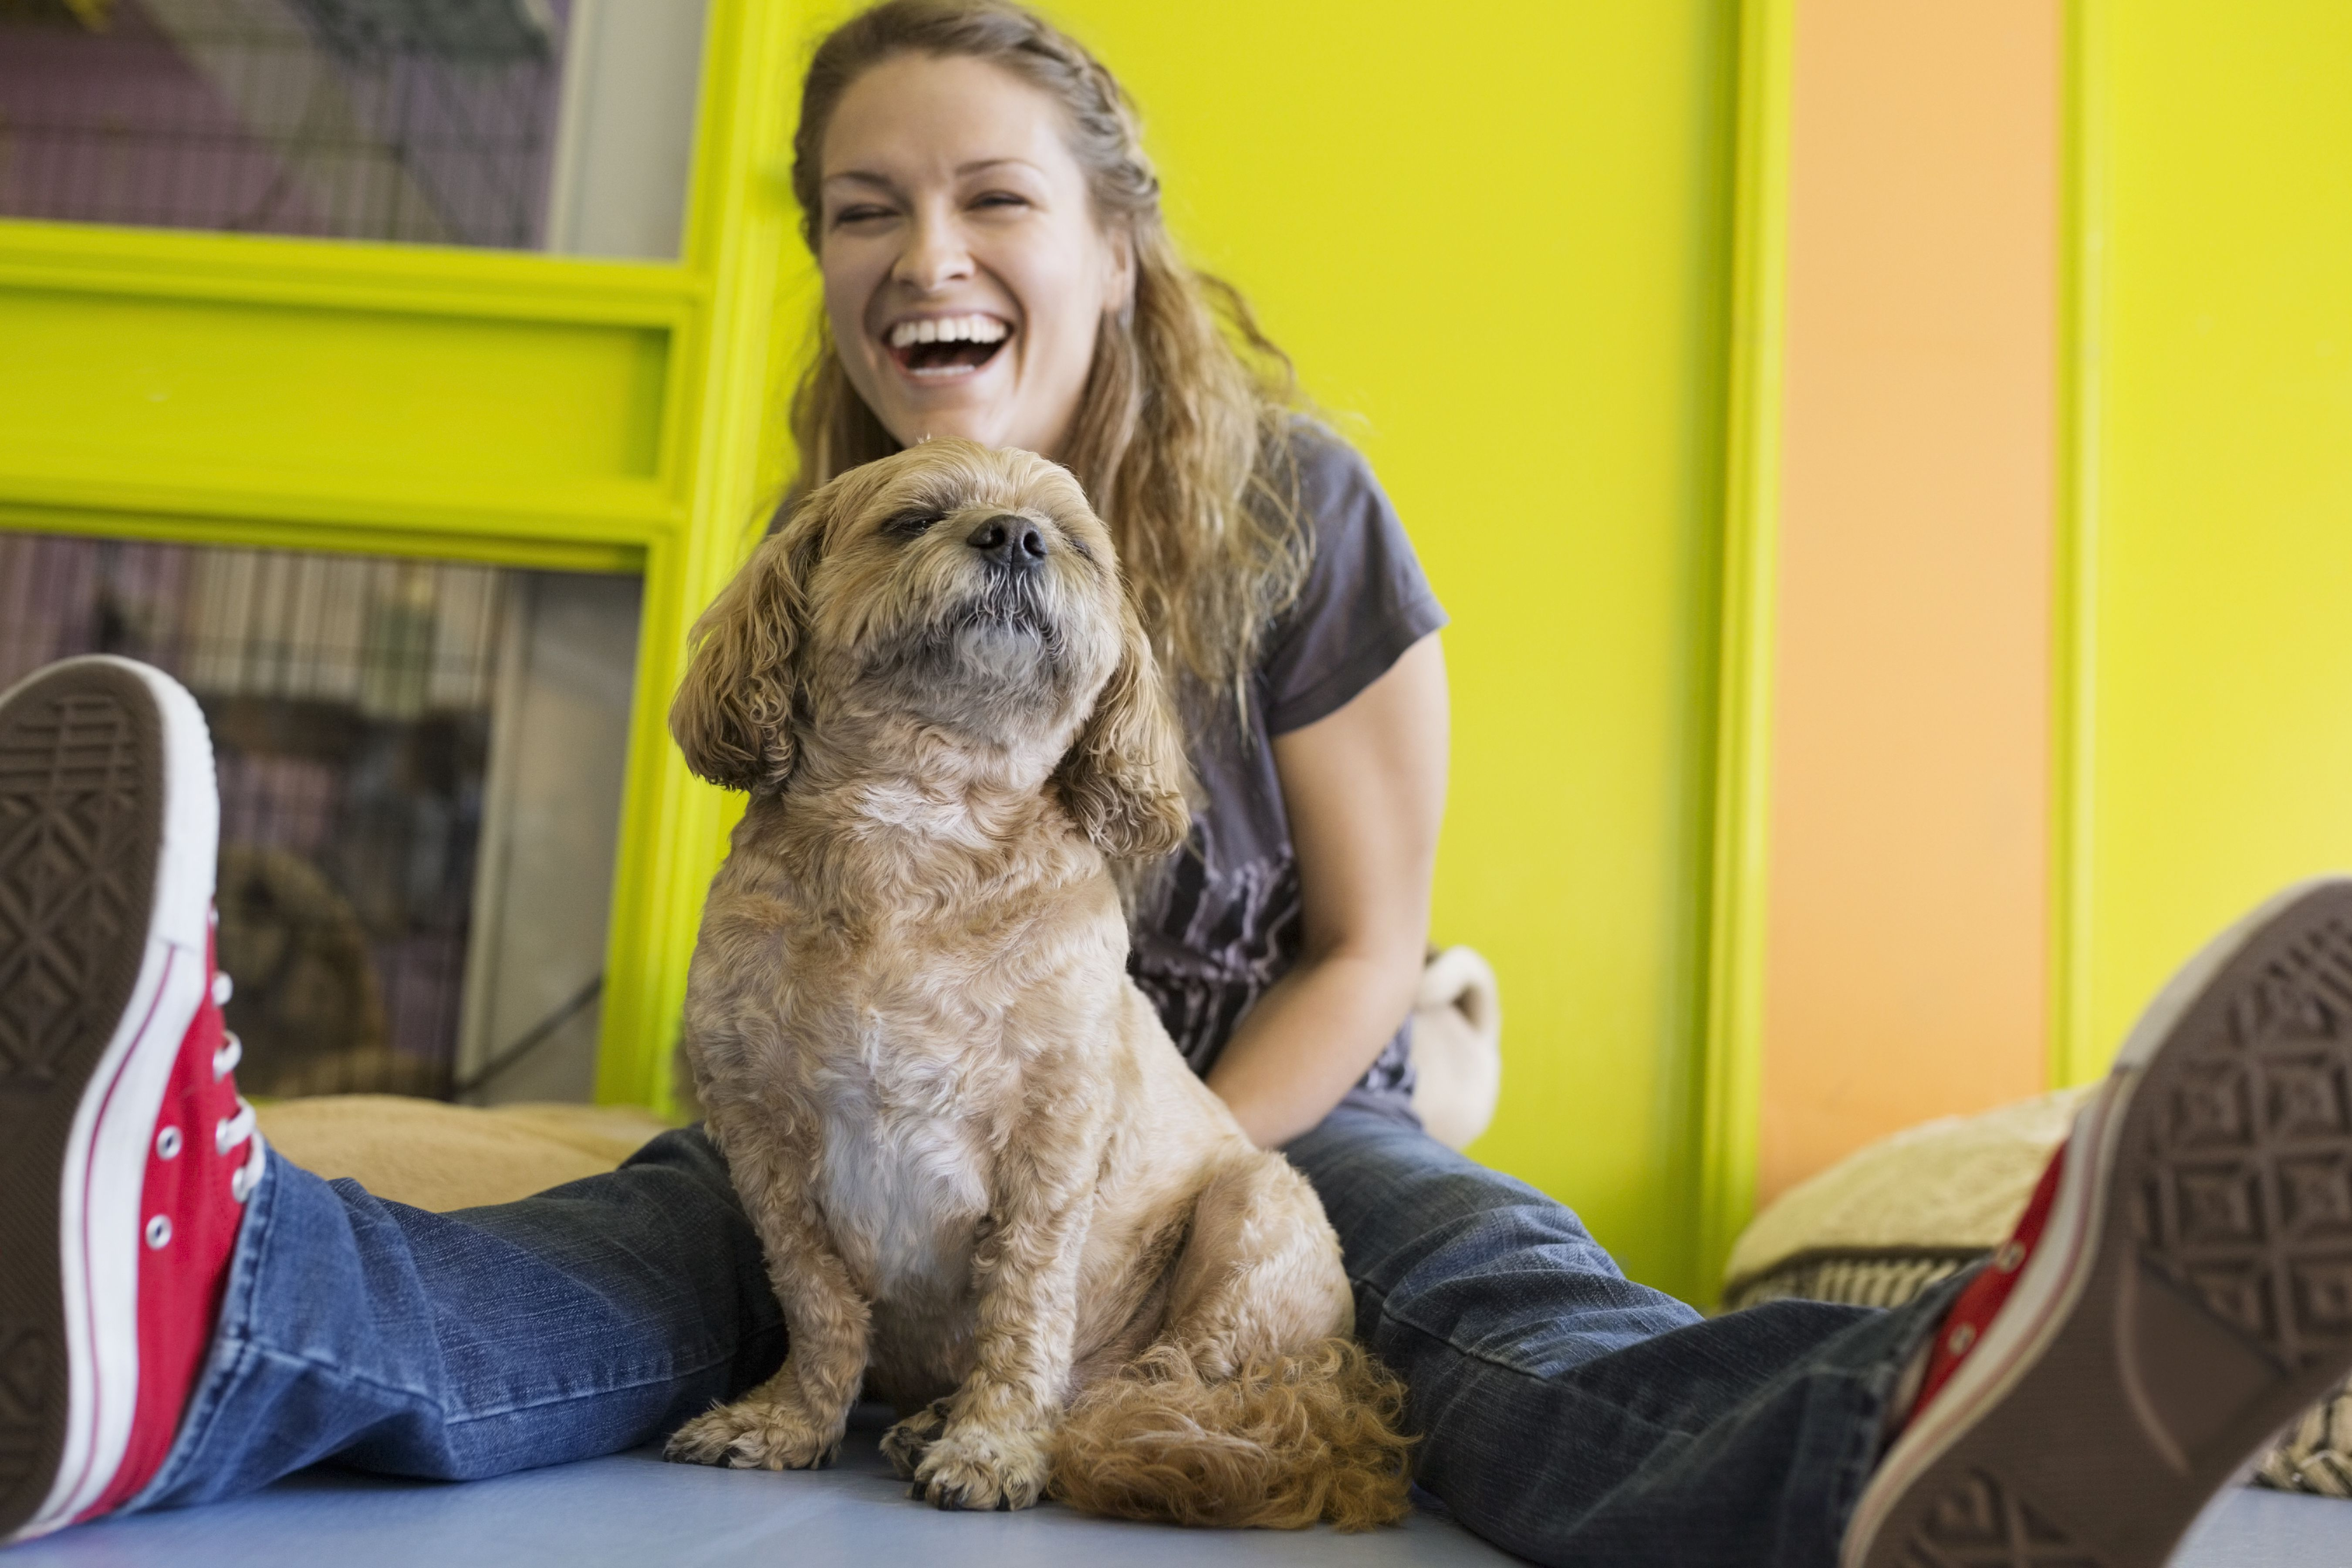 Laughing woman with dog